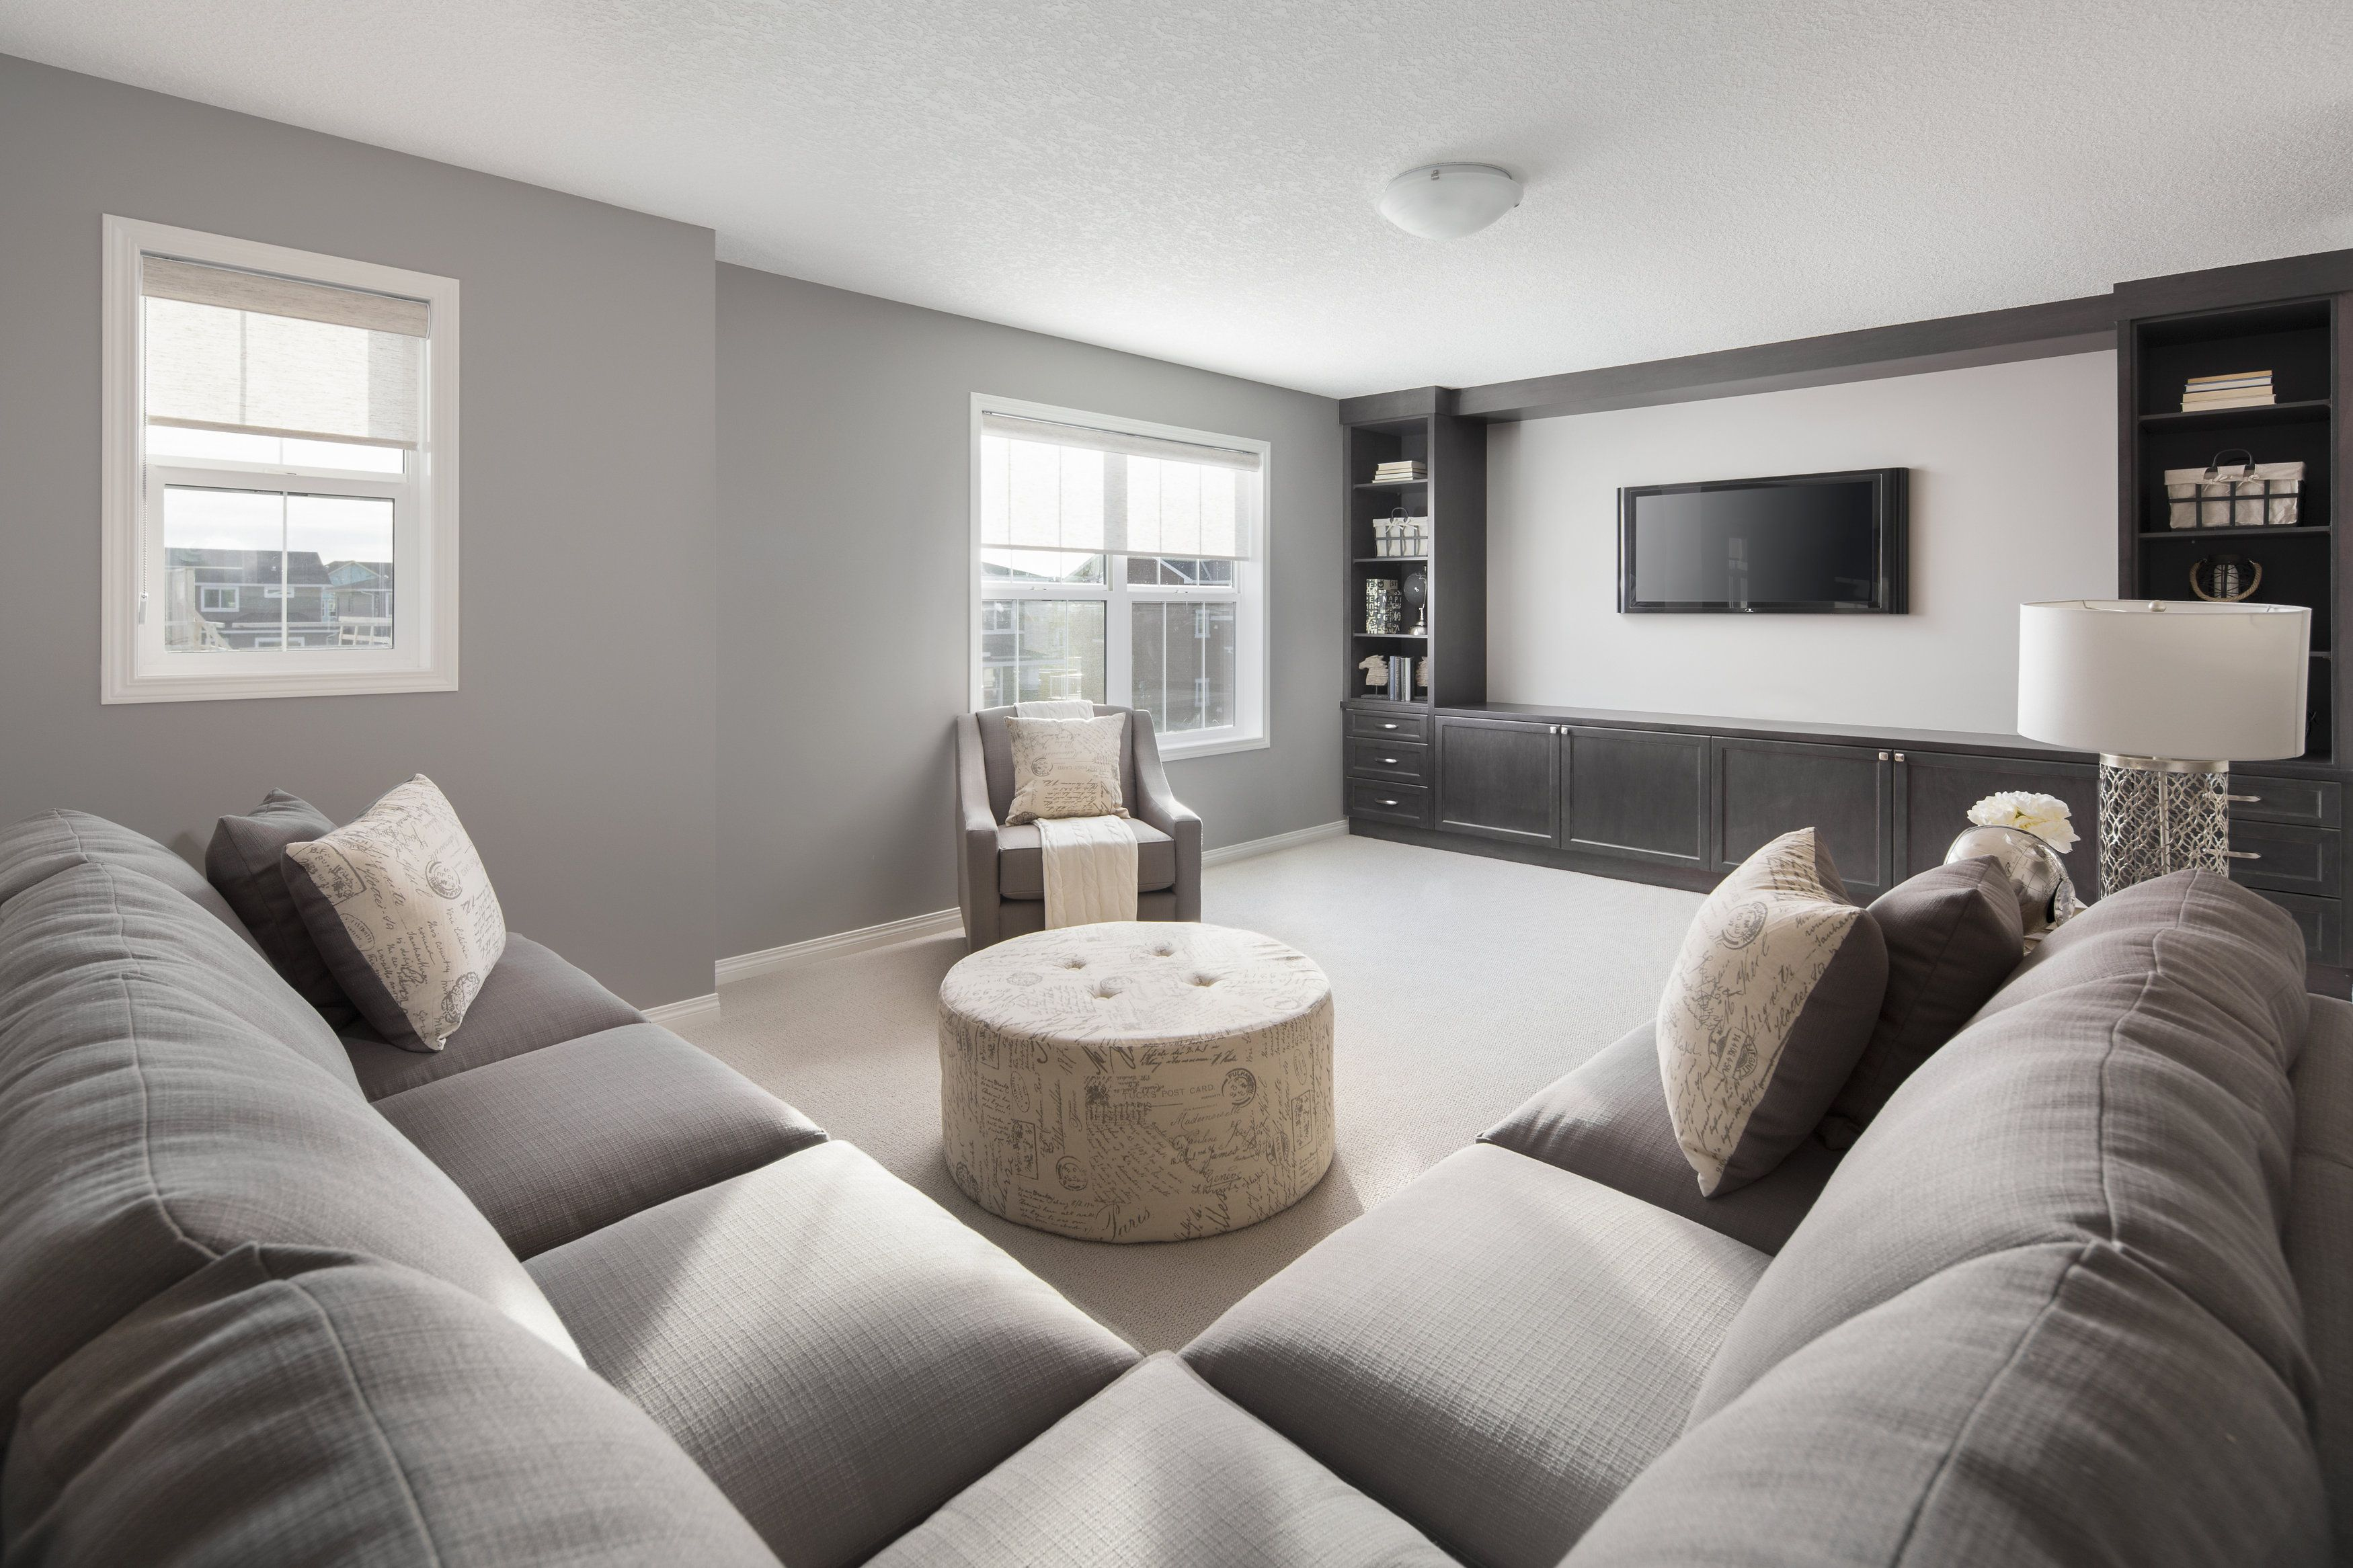 Second floor family room in Shane Homes' Tofino II